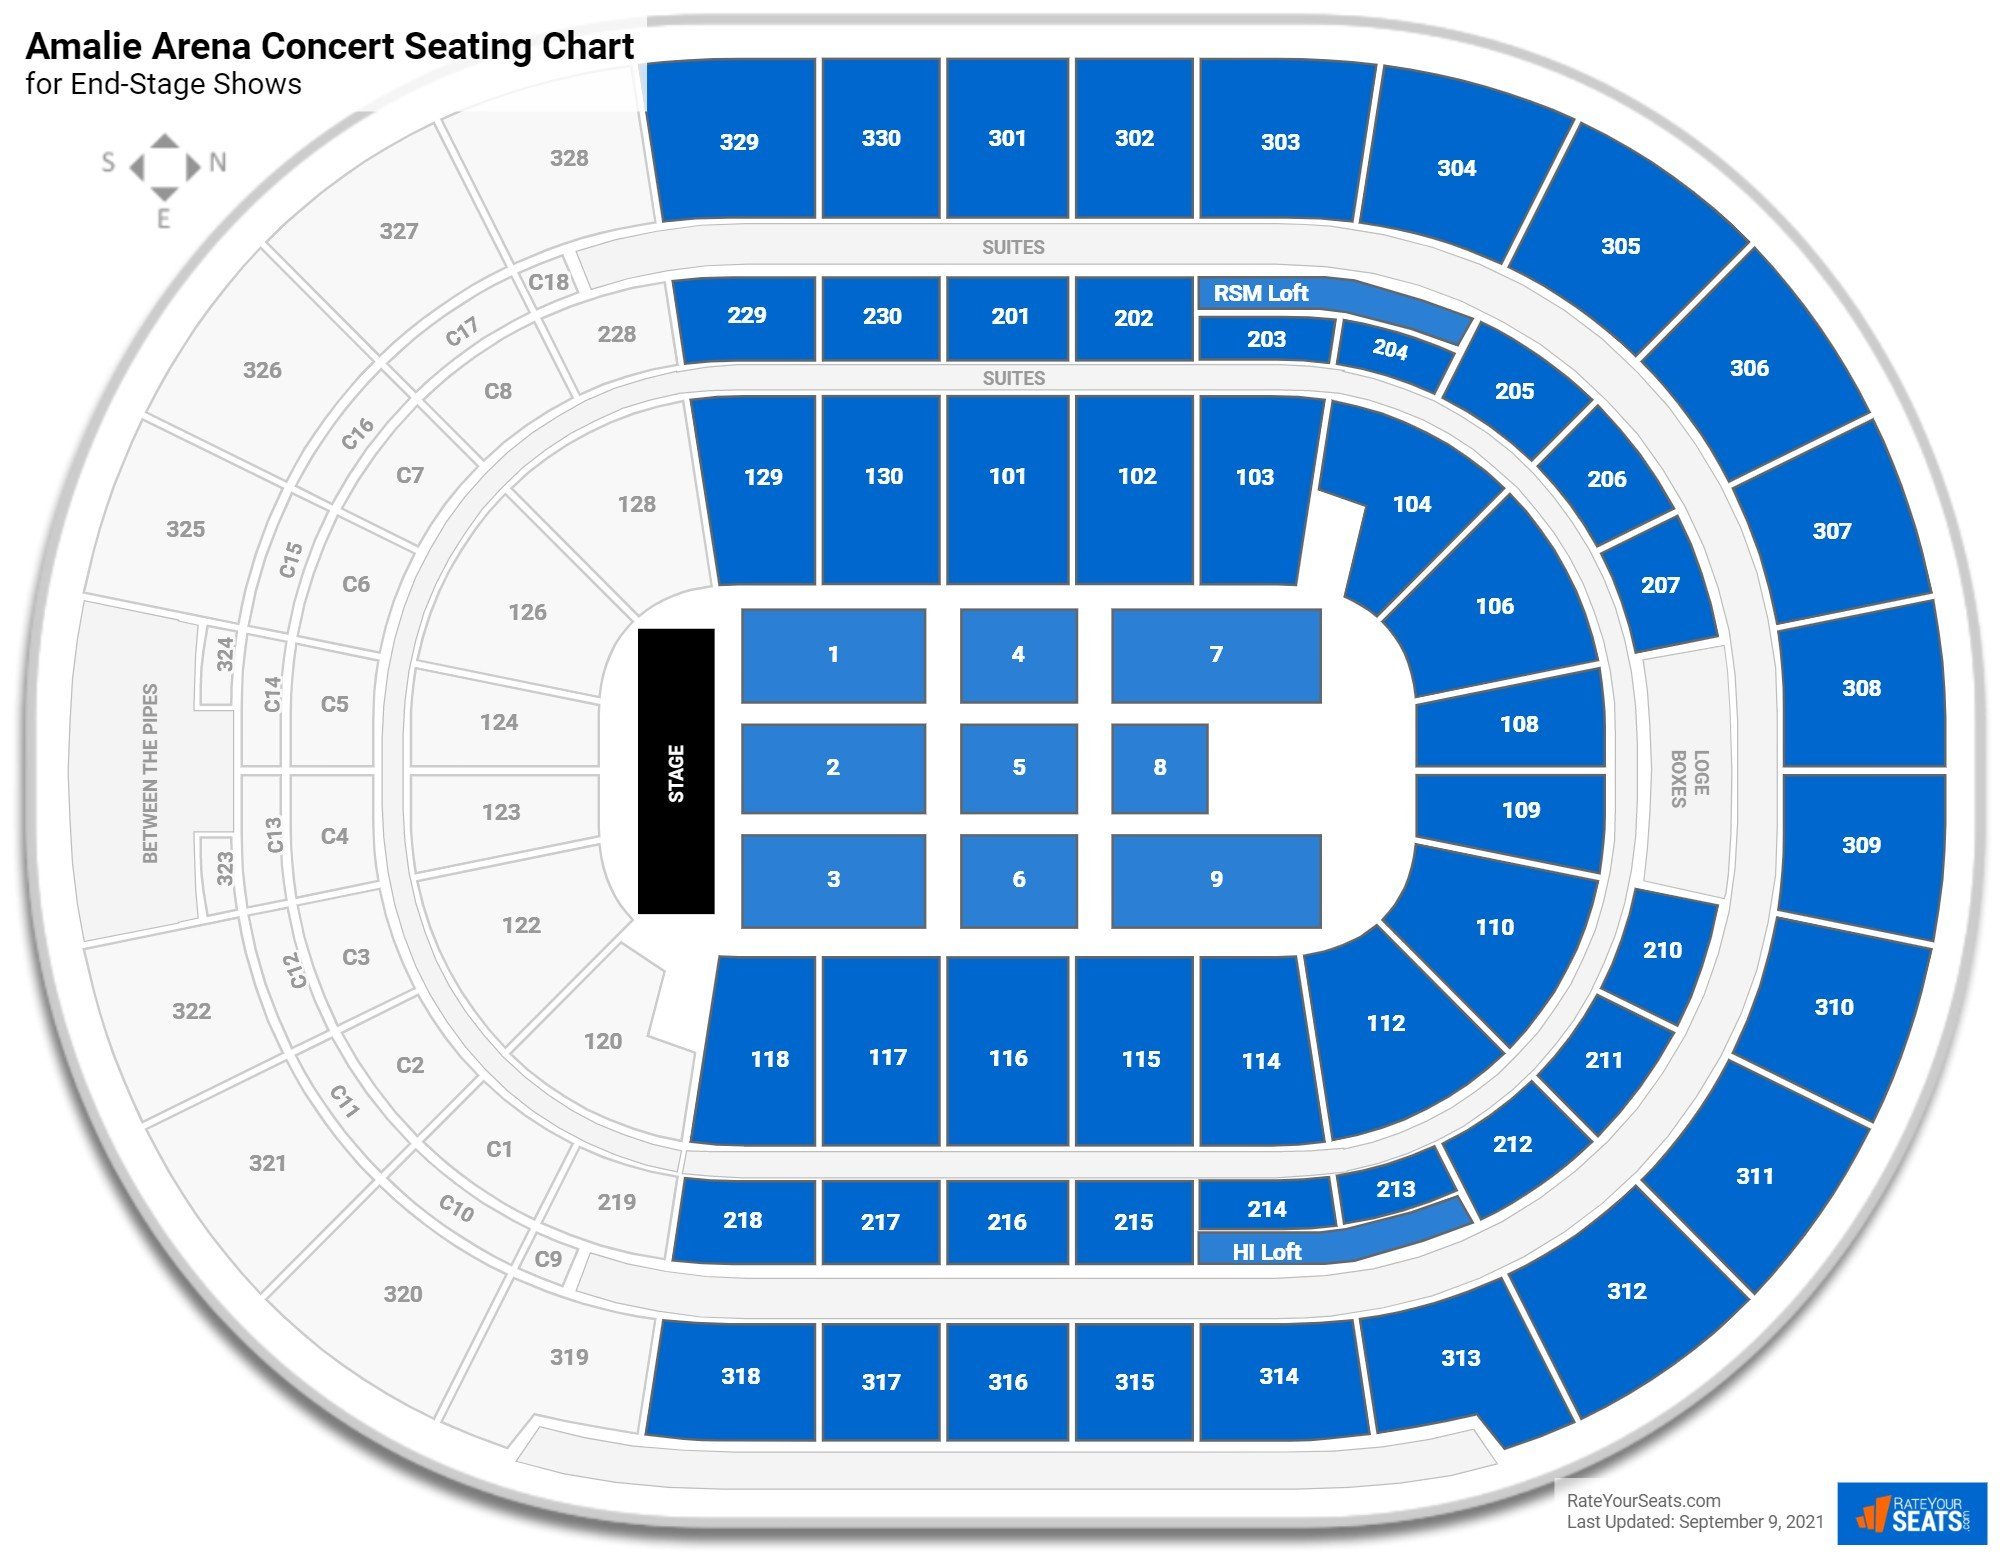 Amalie Arena Seating Chart for Concerts